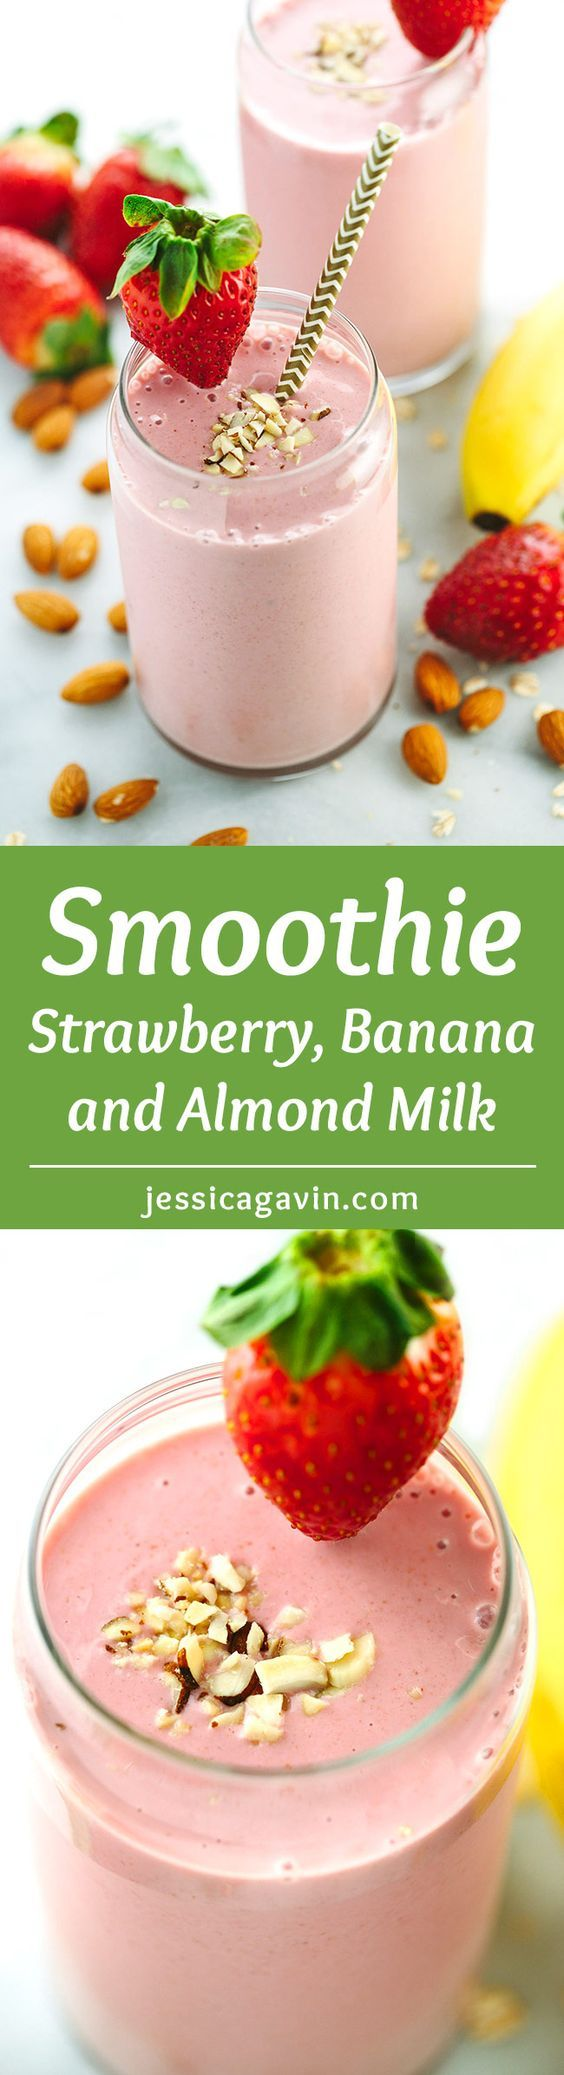 healthy fruit smoothie recipes with almond milk healthy fruit smoothie recipes for weight loss